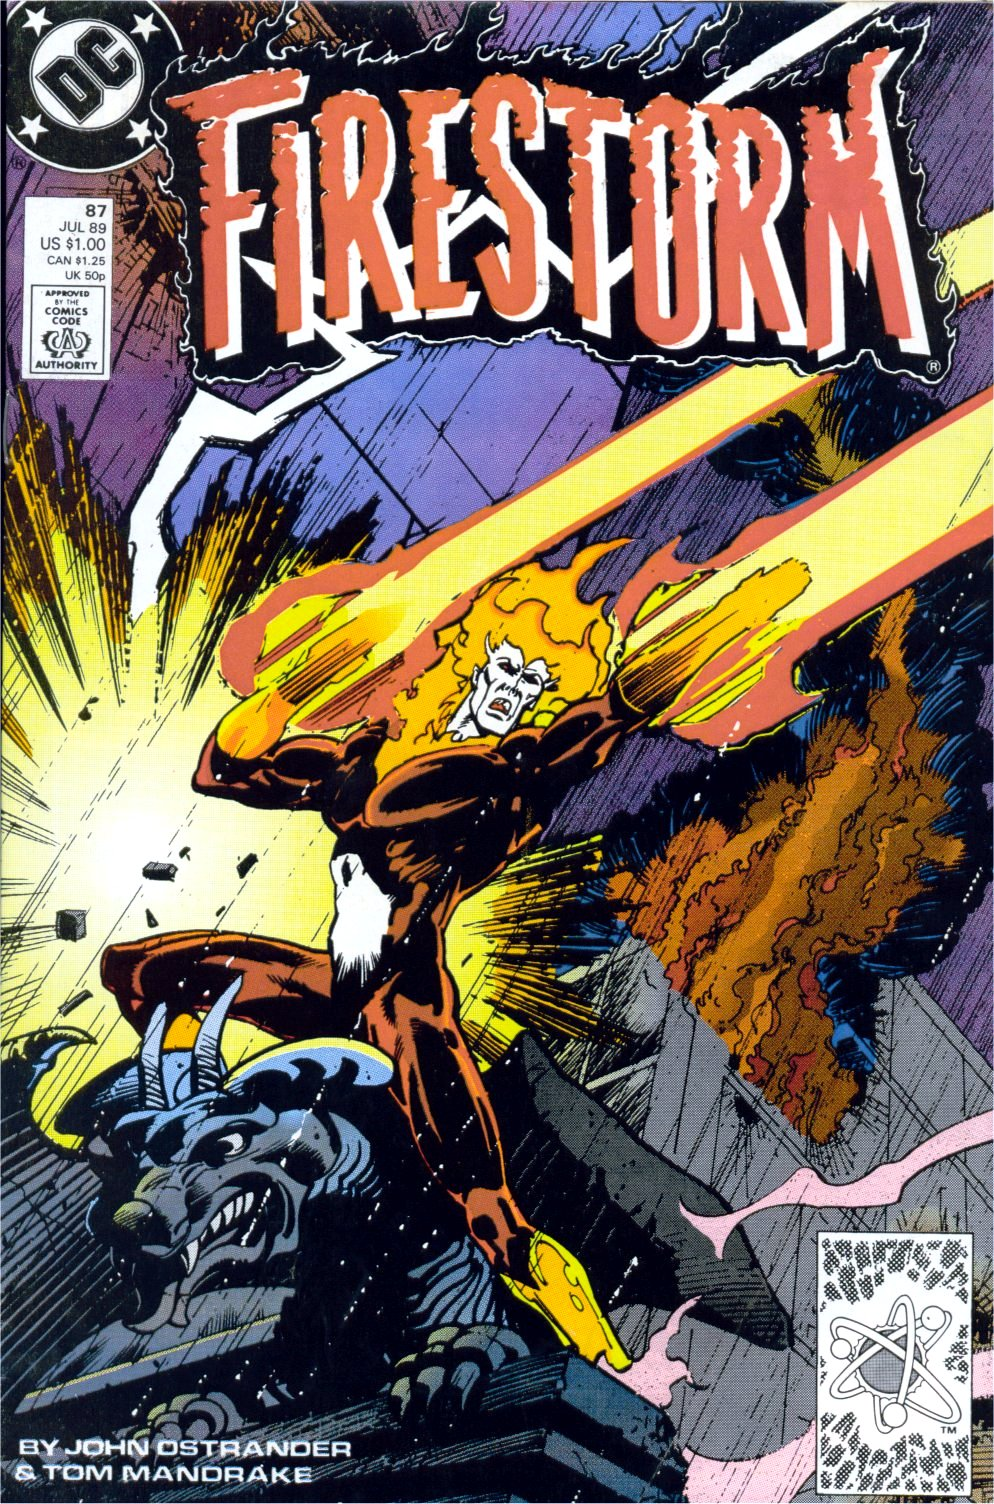 Firestorm, the Nuclear Man 87 Page 1